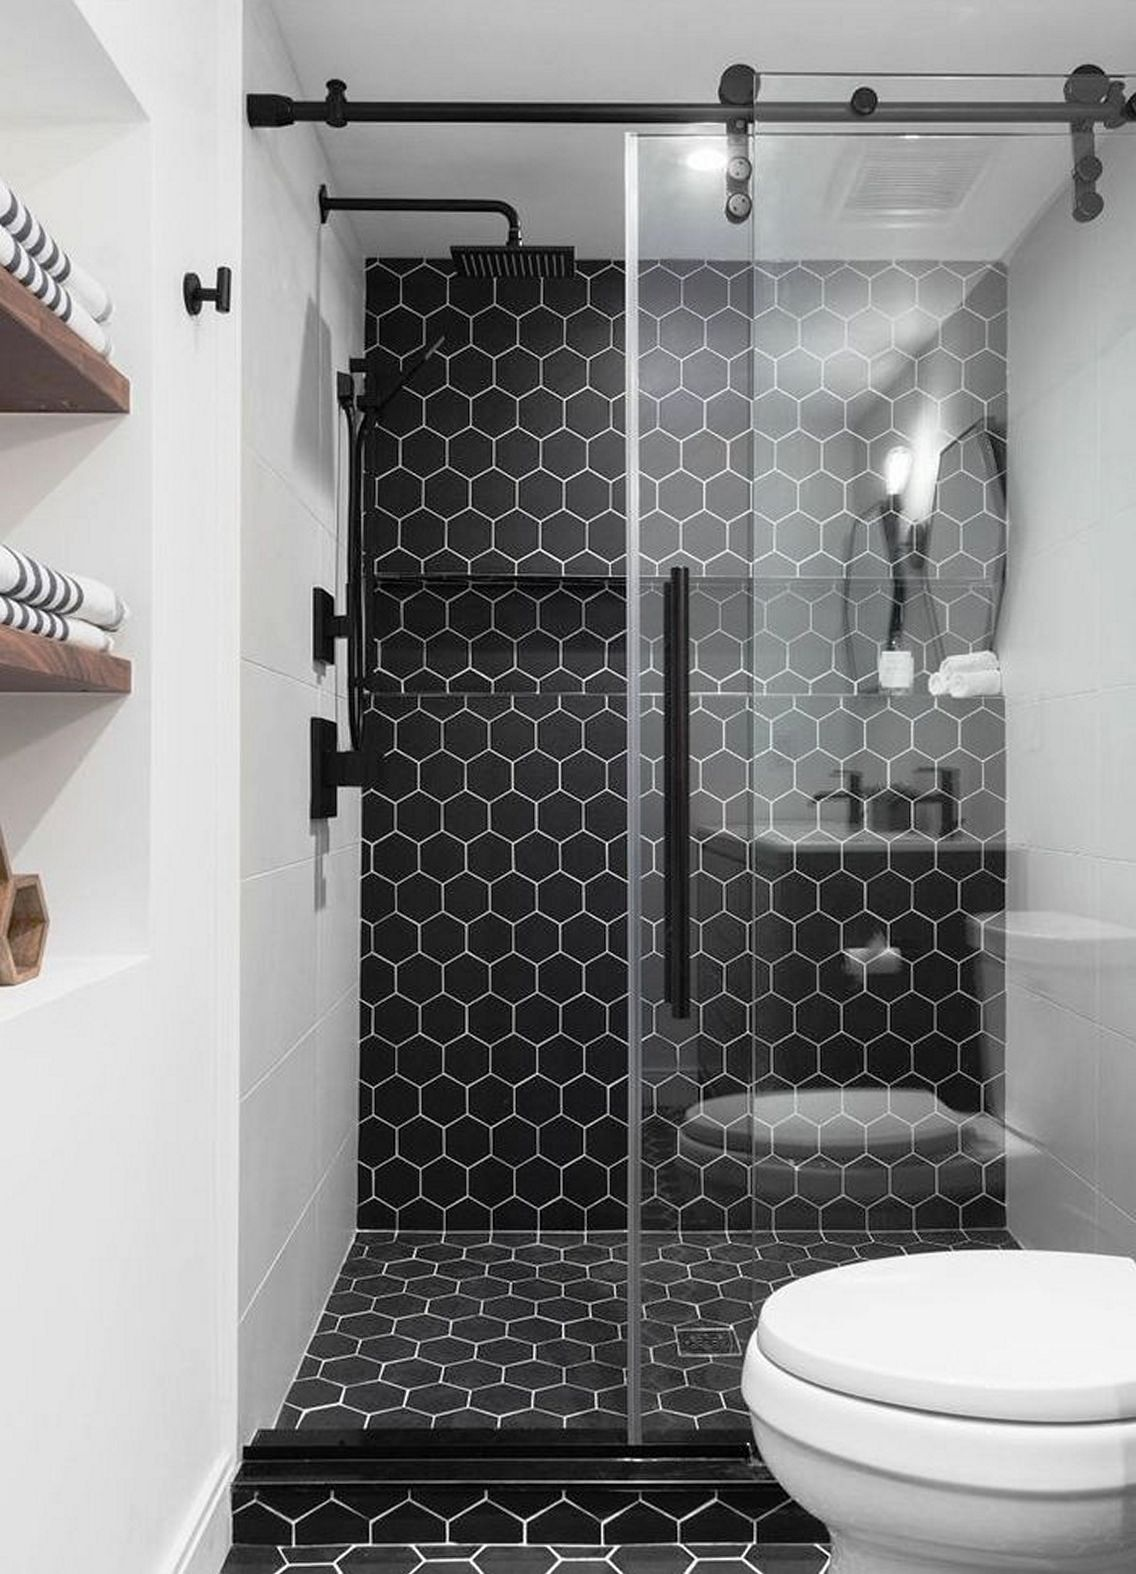 Bathroom trends 2021 the perfect new look for your bathroom remodeling 4